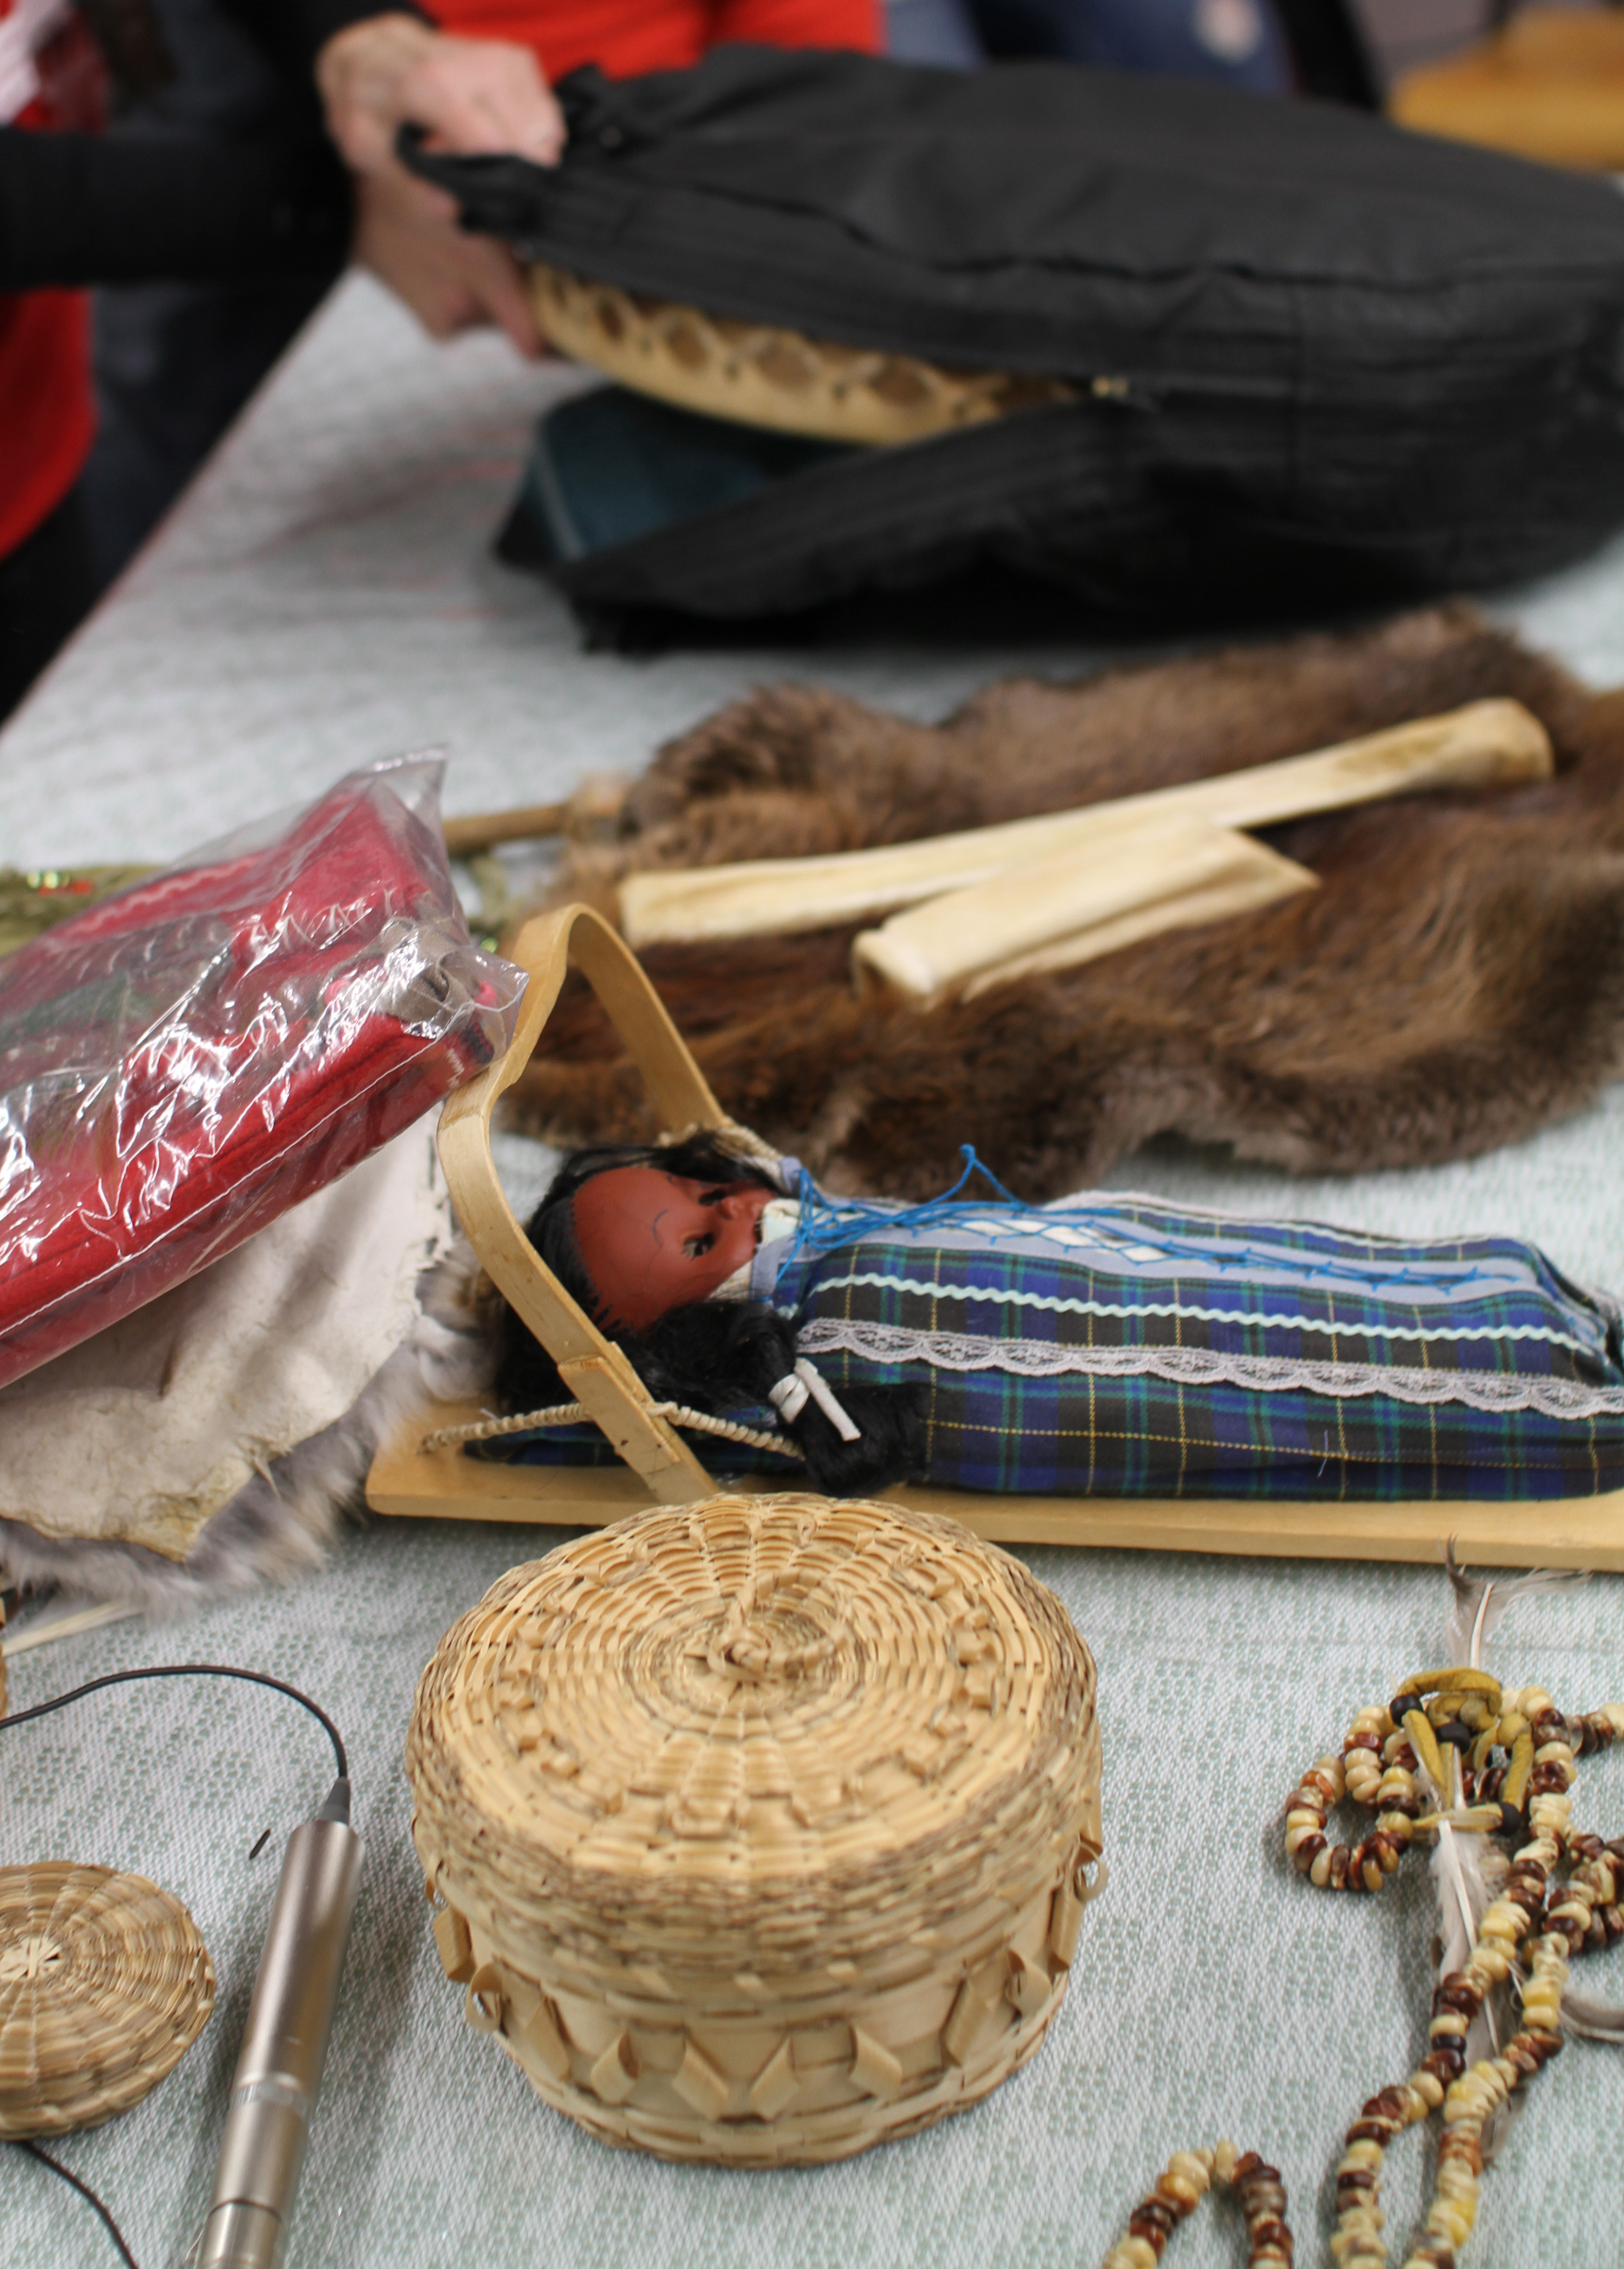 Objets traditionnels